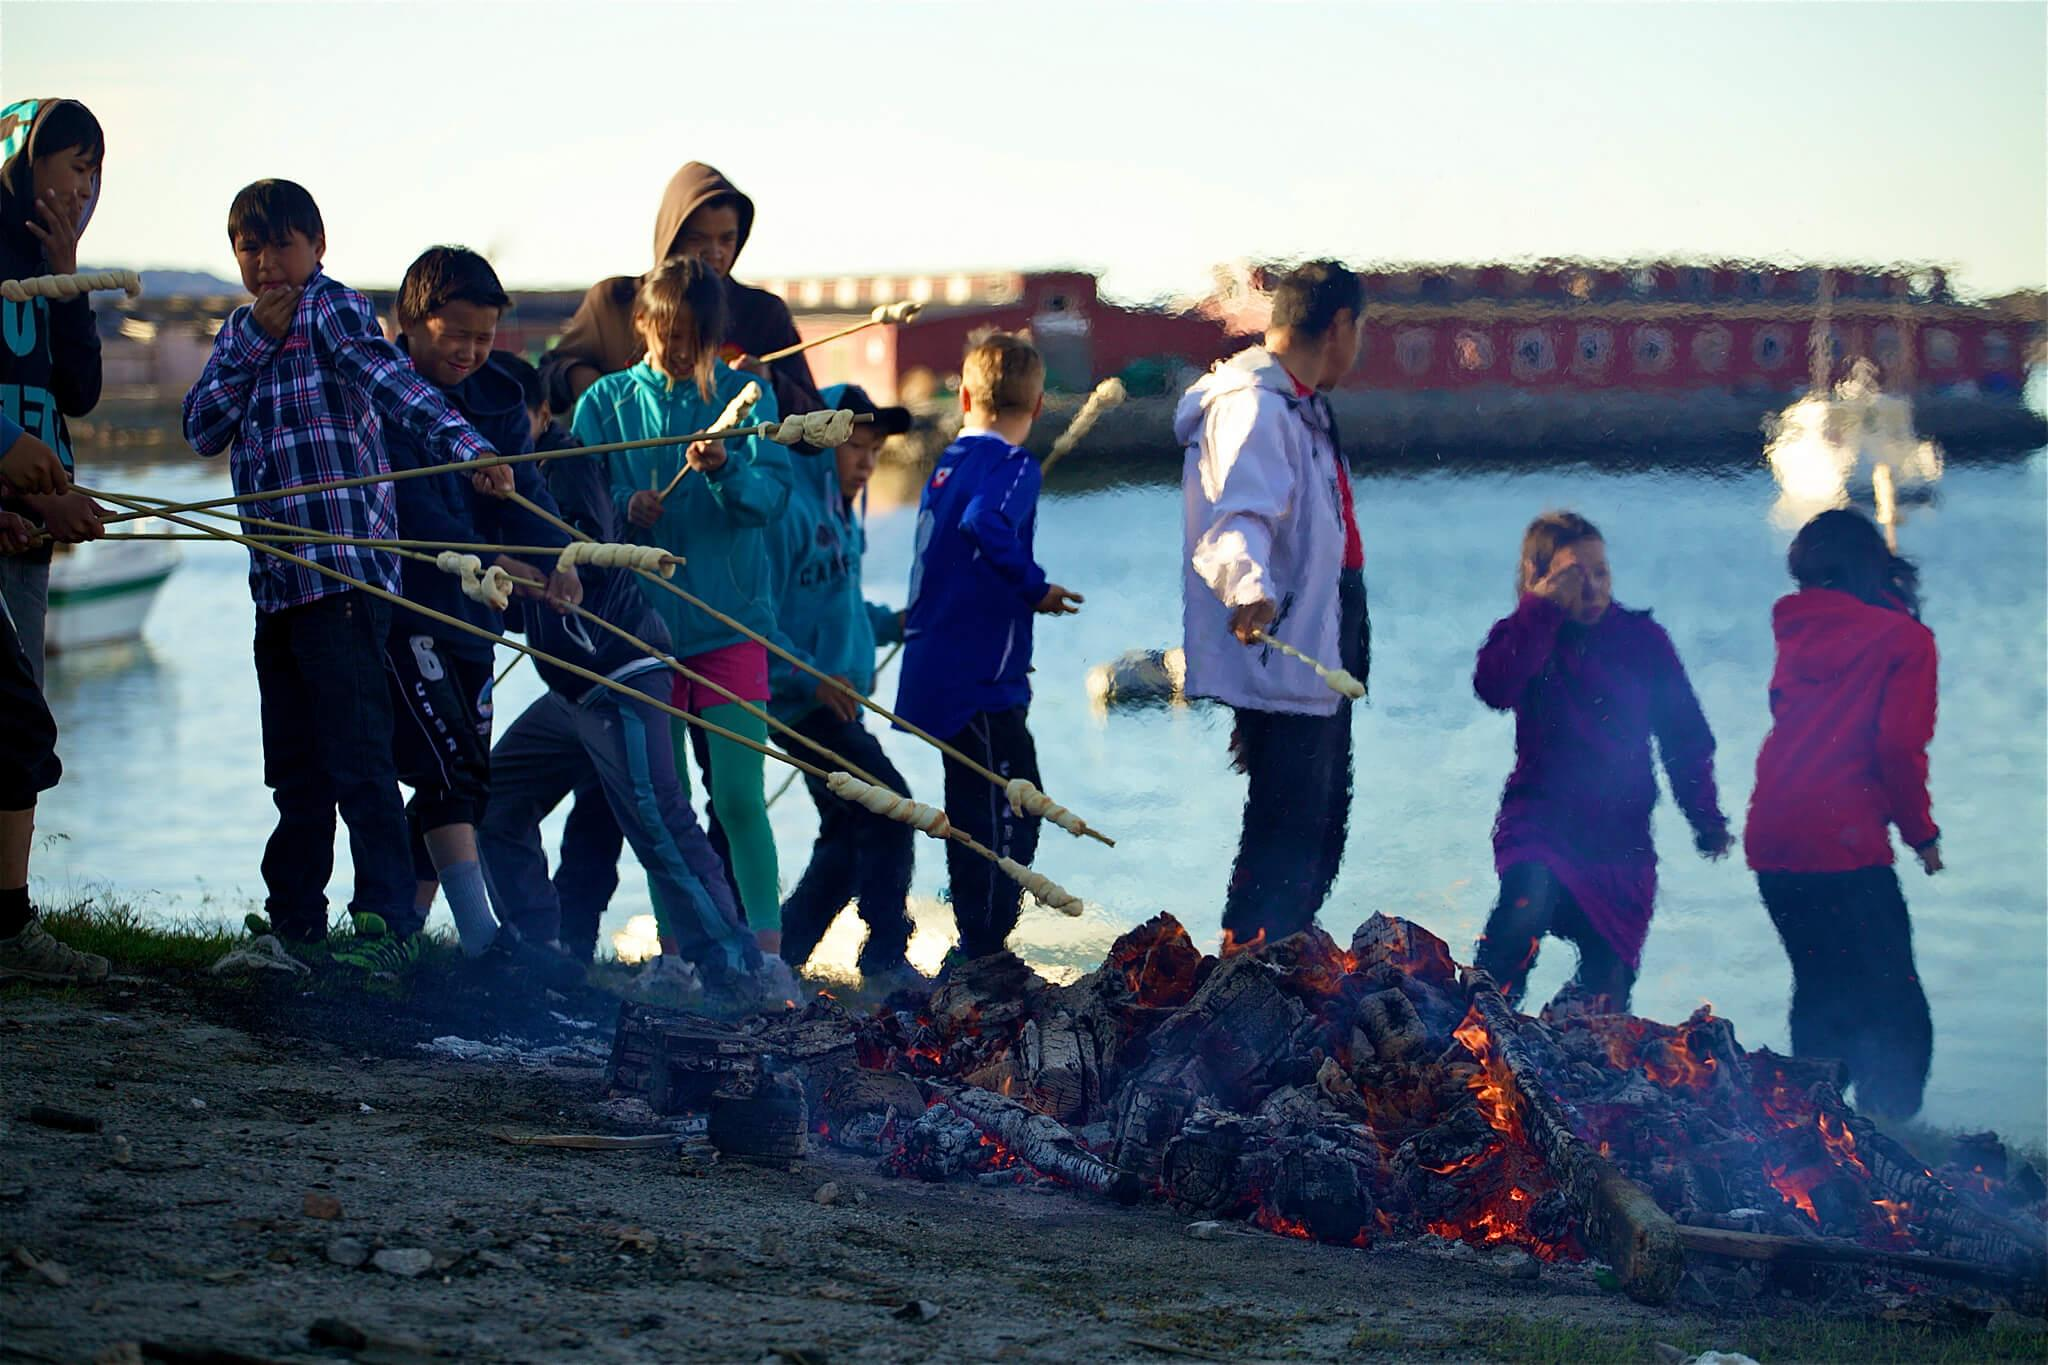 Kids making twist bread at bonfire in Aasiaat. Photo by Magssannguaq Qujaukitsoq.